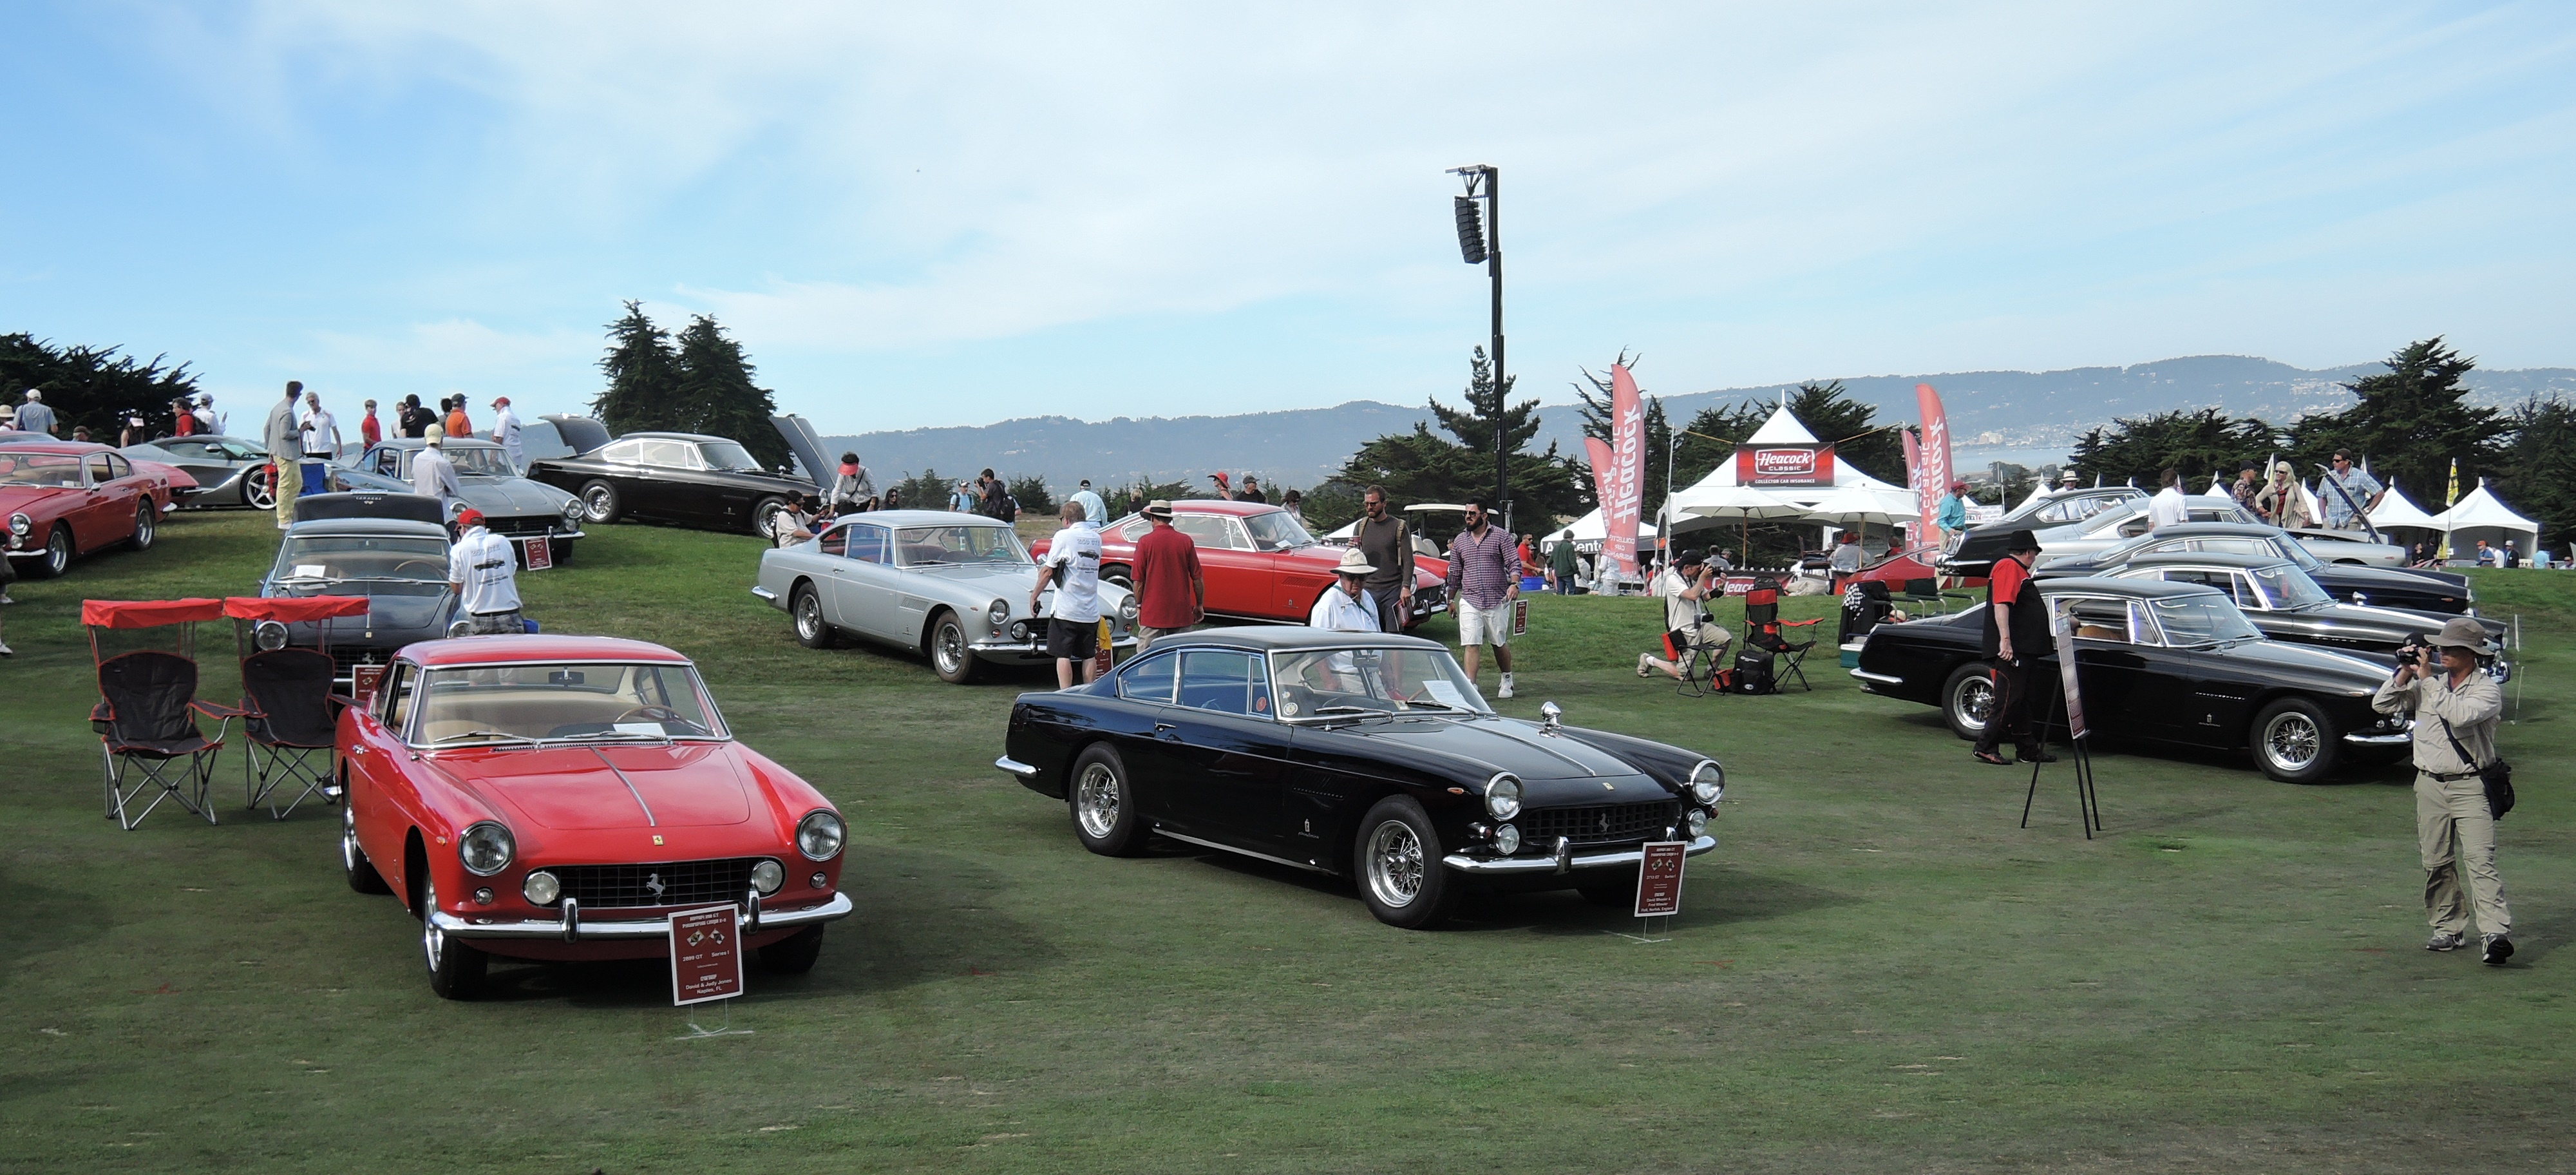 Ferrari 250 GTE's are on the field - concorso italiano